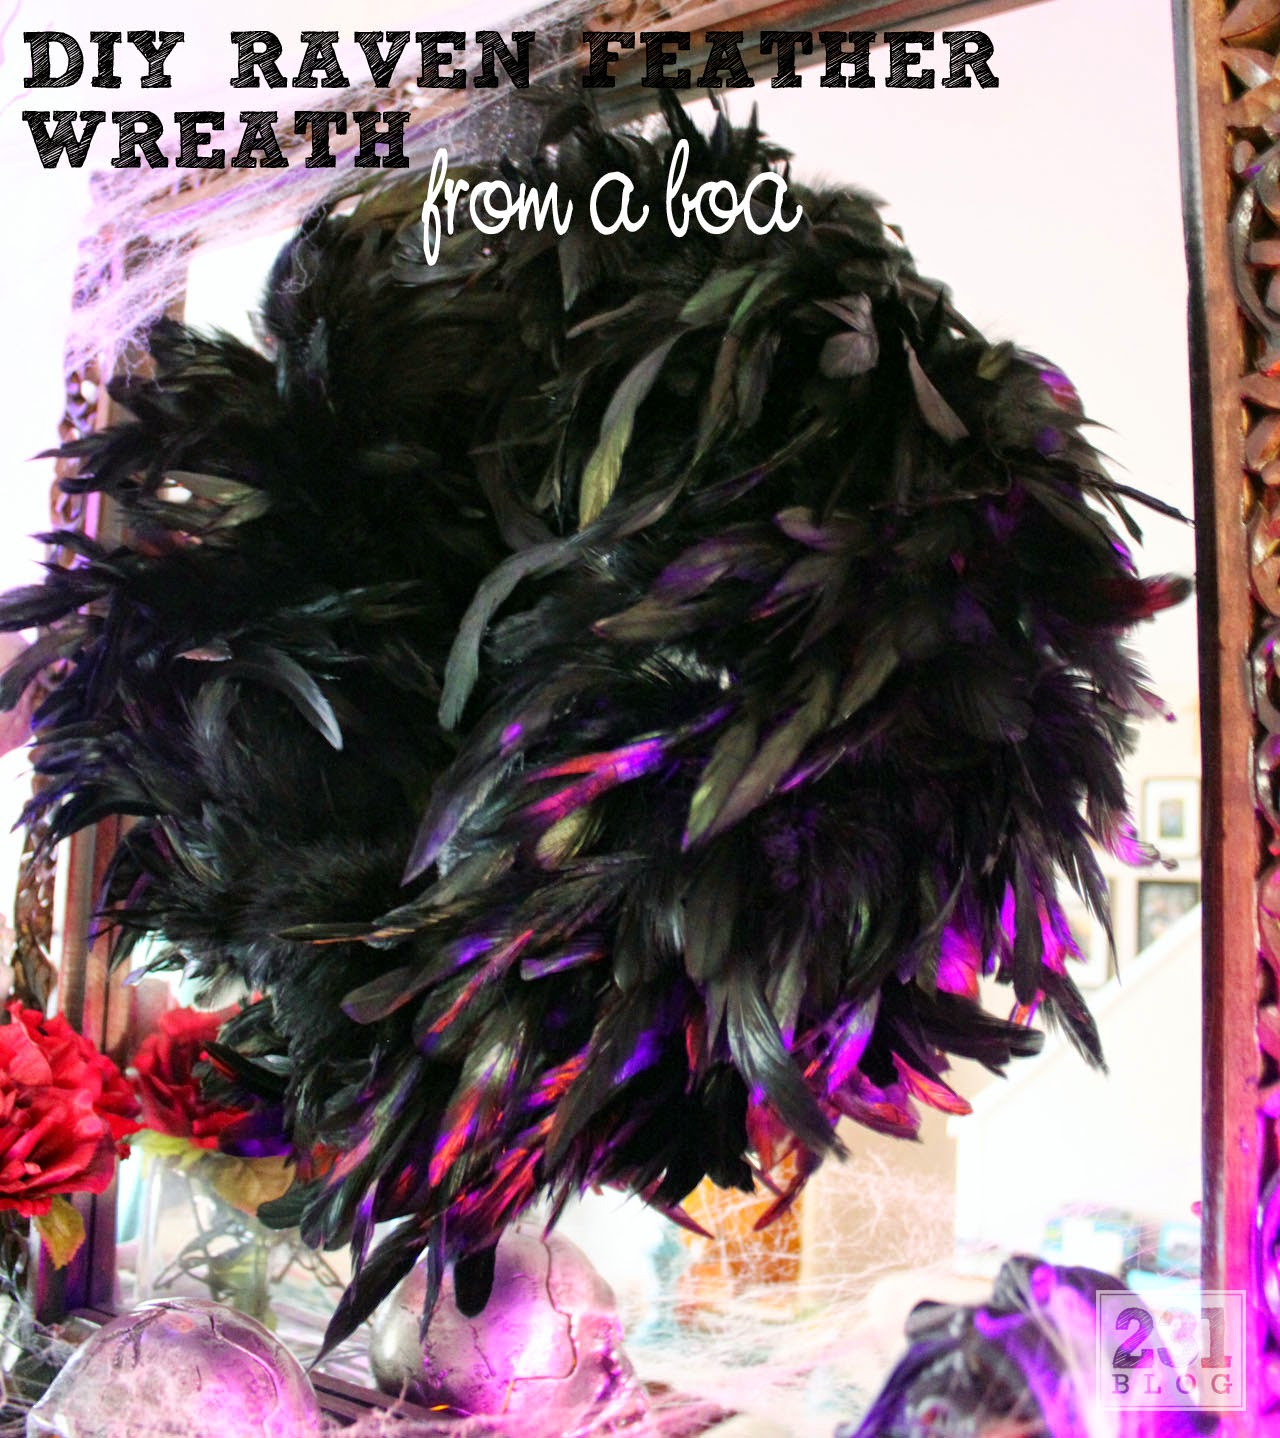 DIY Raven Feather Wreath from a Boa